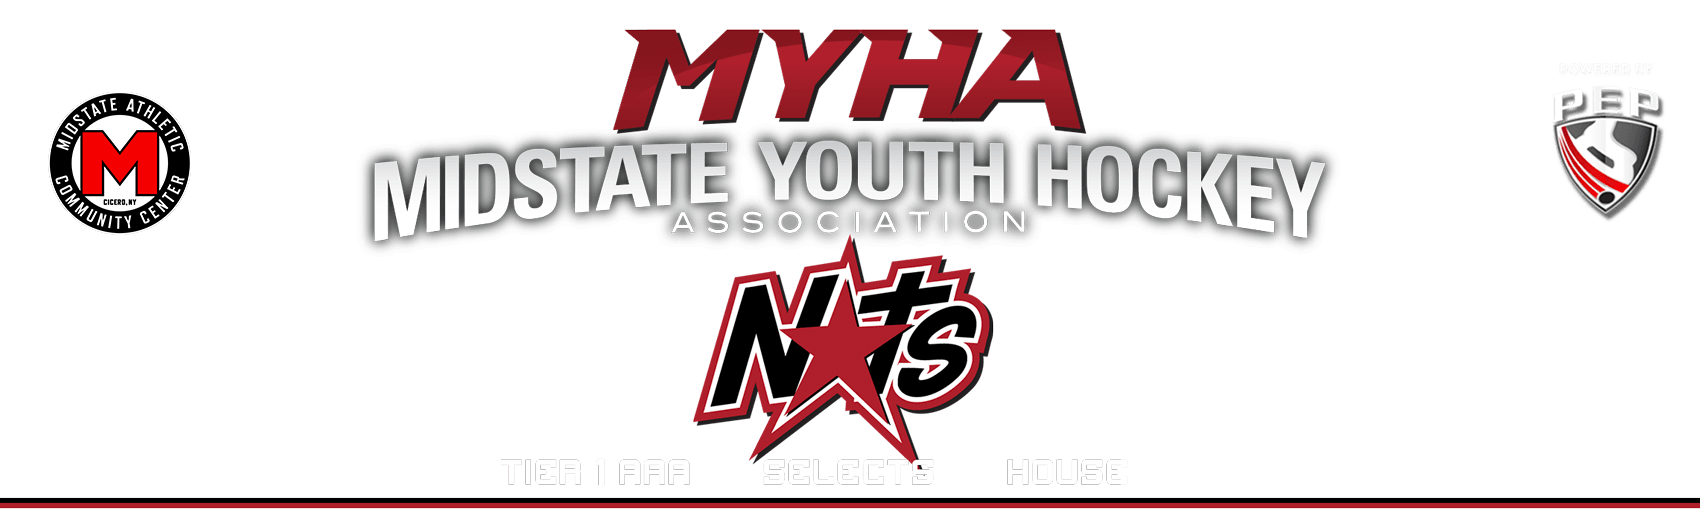 Midstate Youth Hockey Association, Hockey, Goal, Cicero Twin Rink